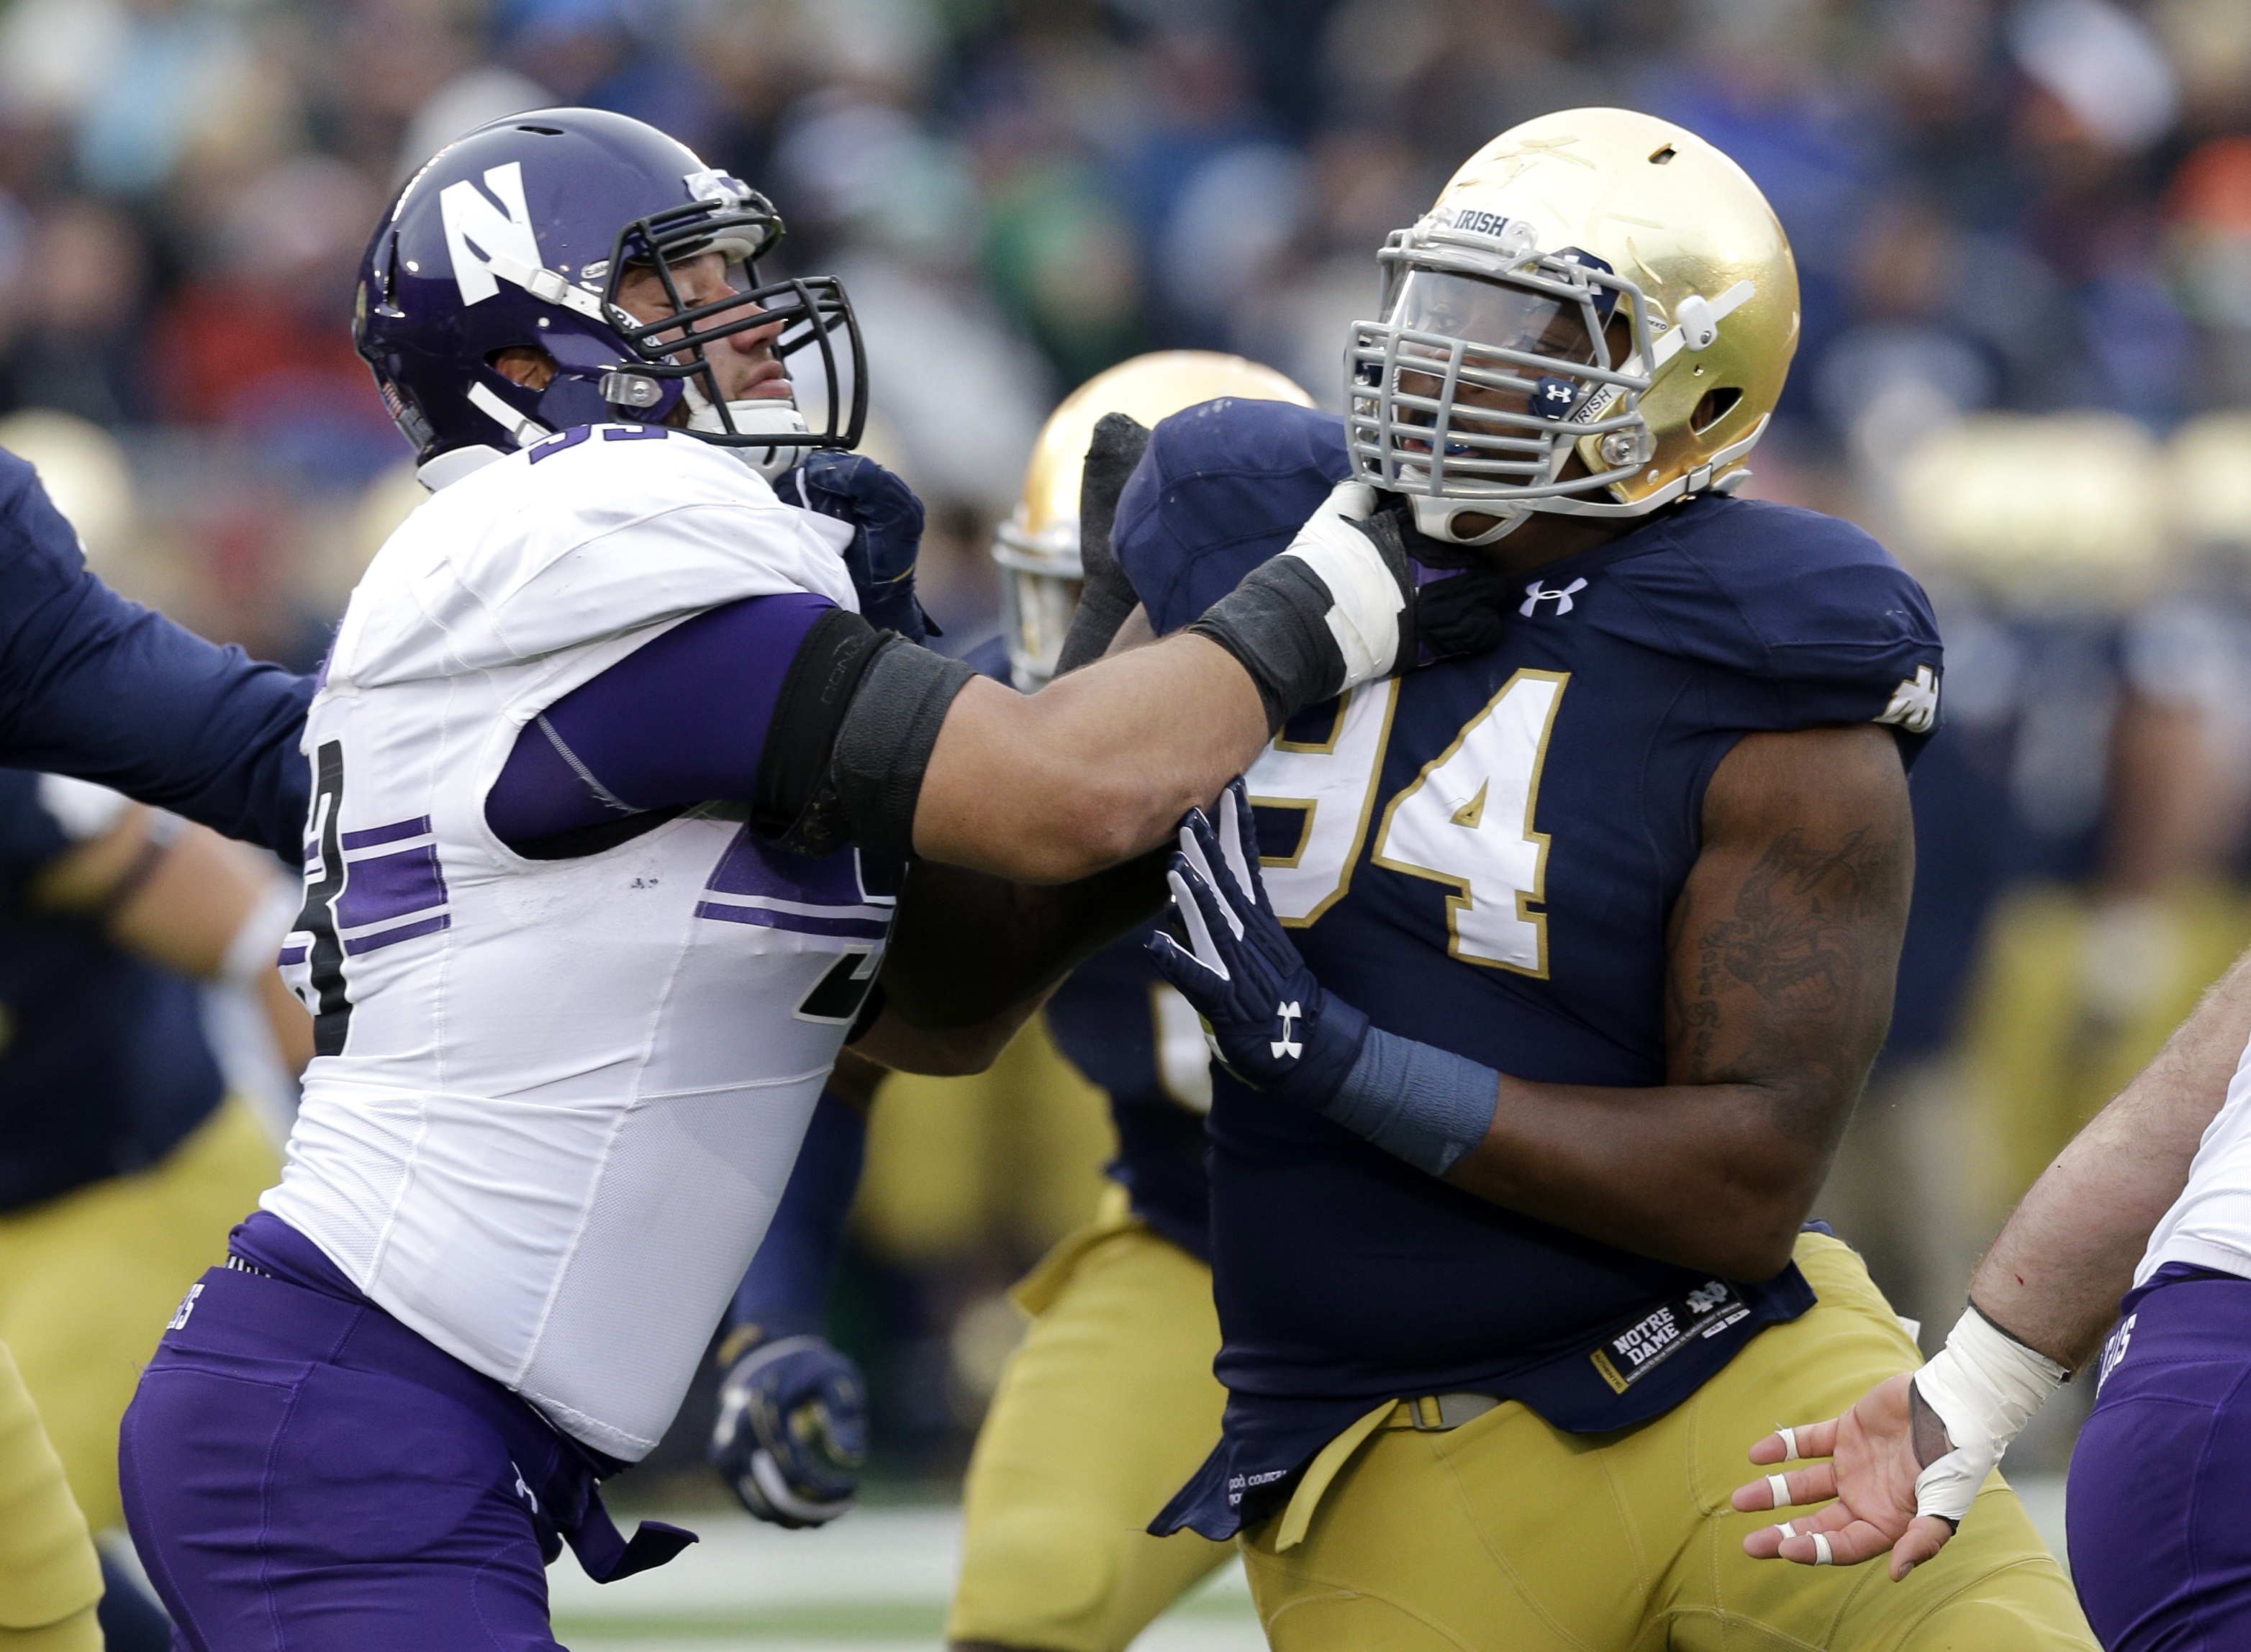 FILE - In this Nov. 15, 2014, file photo, Notre Dame's Jarron Jones (94) rushes against Northwestern offensive lineman Geoff Mogus (53) during the first half of an NCAA college football game in South Bend, Ind. Jones, who hasn't played in a game since the